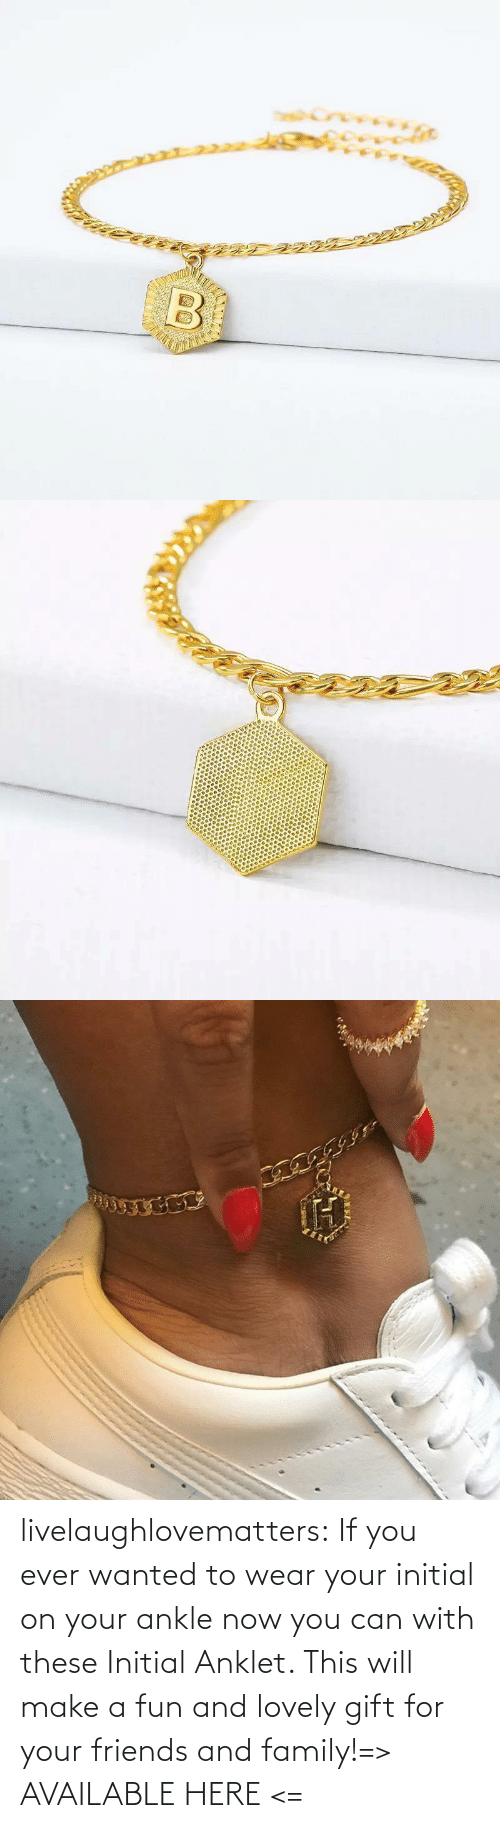 ankle: livelaughlovematters:  If you ever wanted to wear your initial on your ankle now you can with these Initial Anklet. This will make a fun and lovely gift for your friends and family!=> AVAILABLE HERE <=